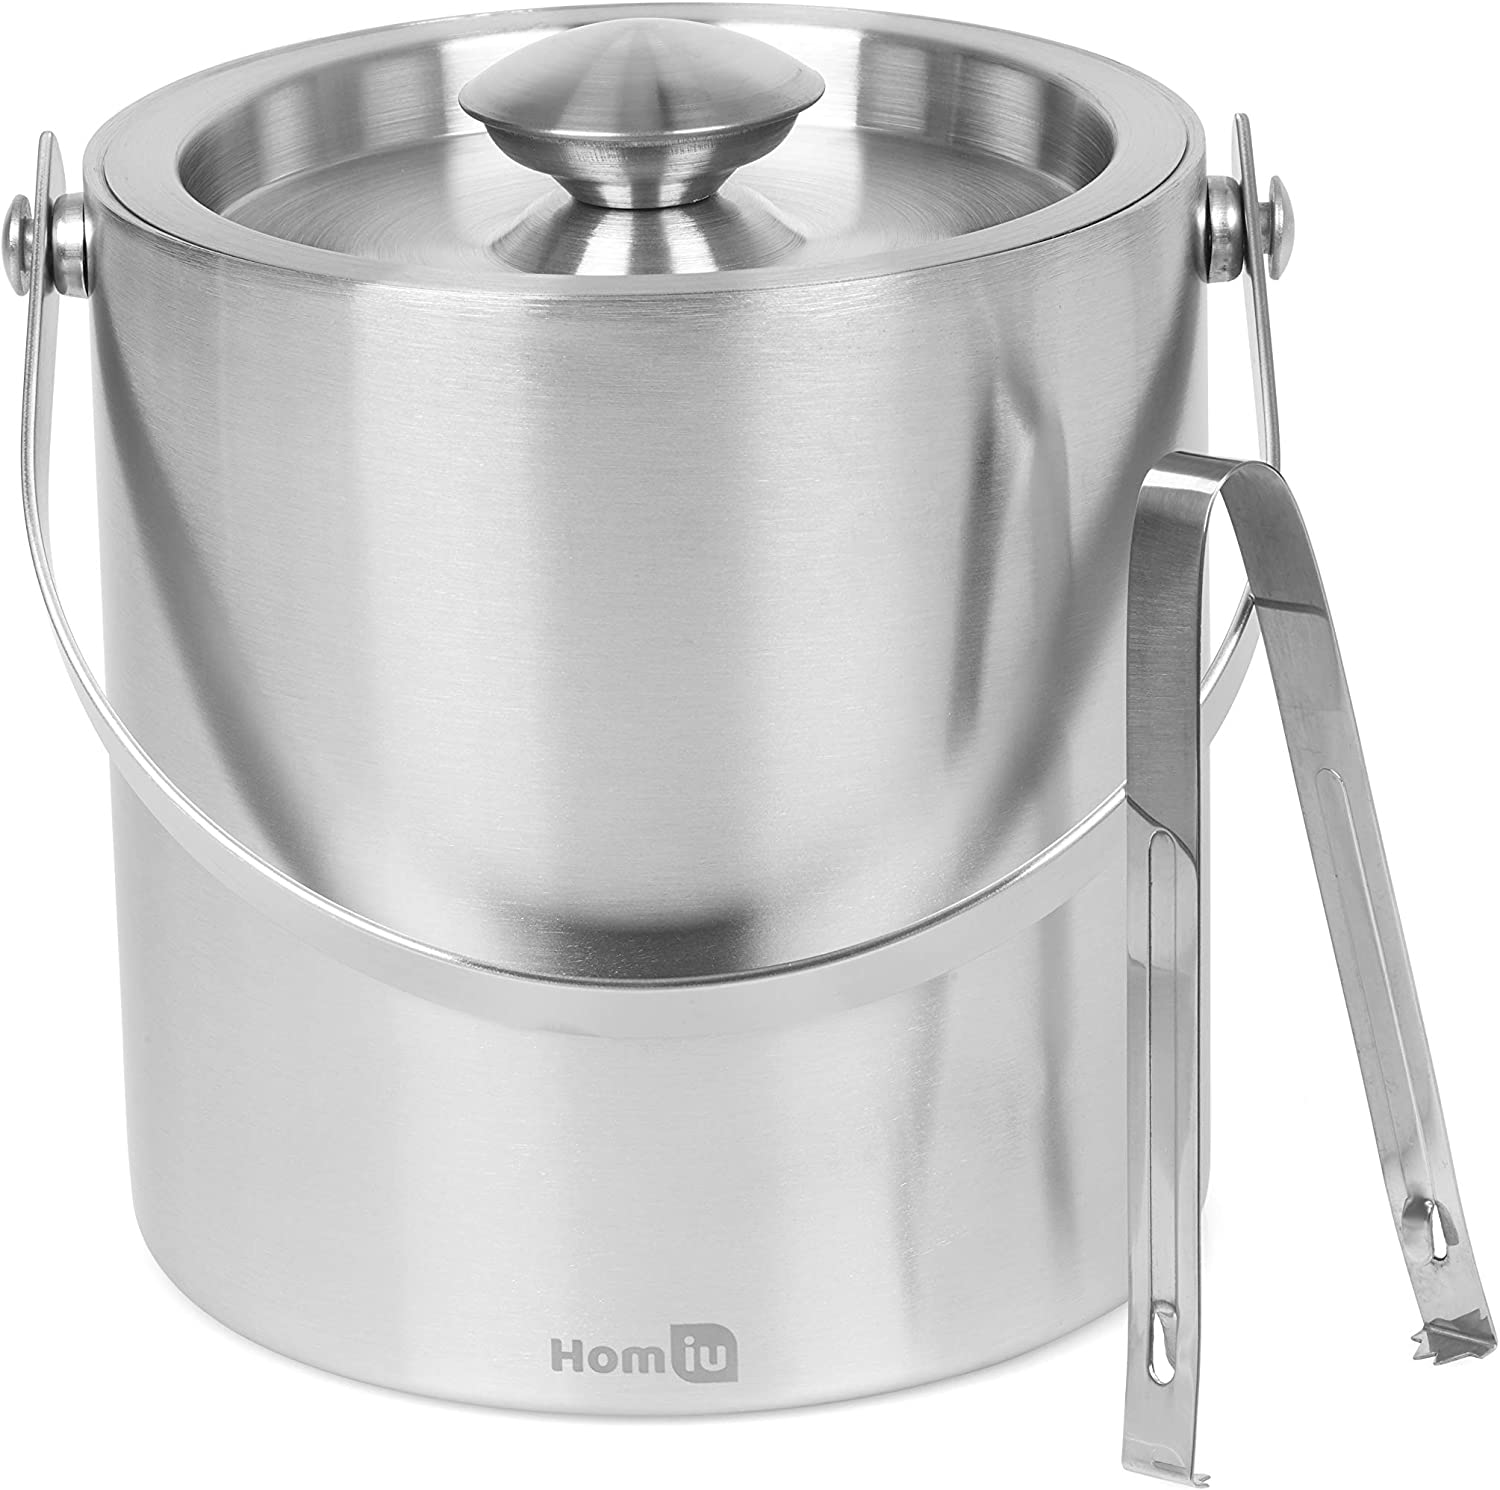 Homiu Ice Bucket with lid and tongs Stainless Steel Double Wall 1.5 Or 2 Litre Container Cube Thick Pail with Tweezers (2 L)